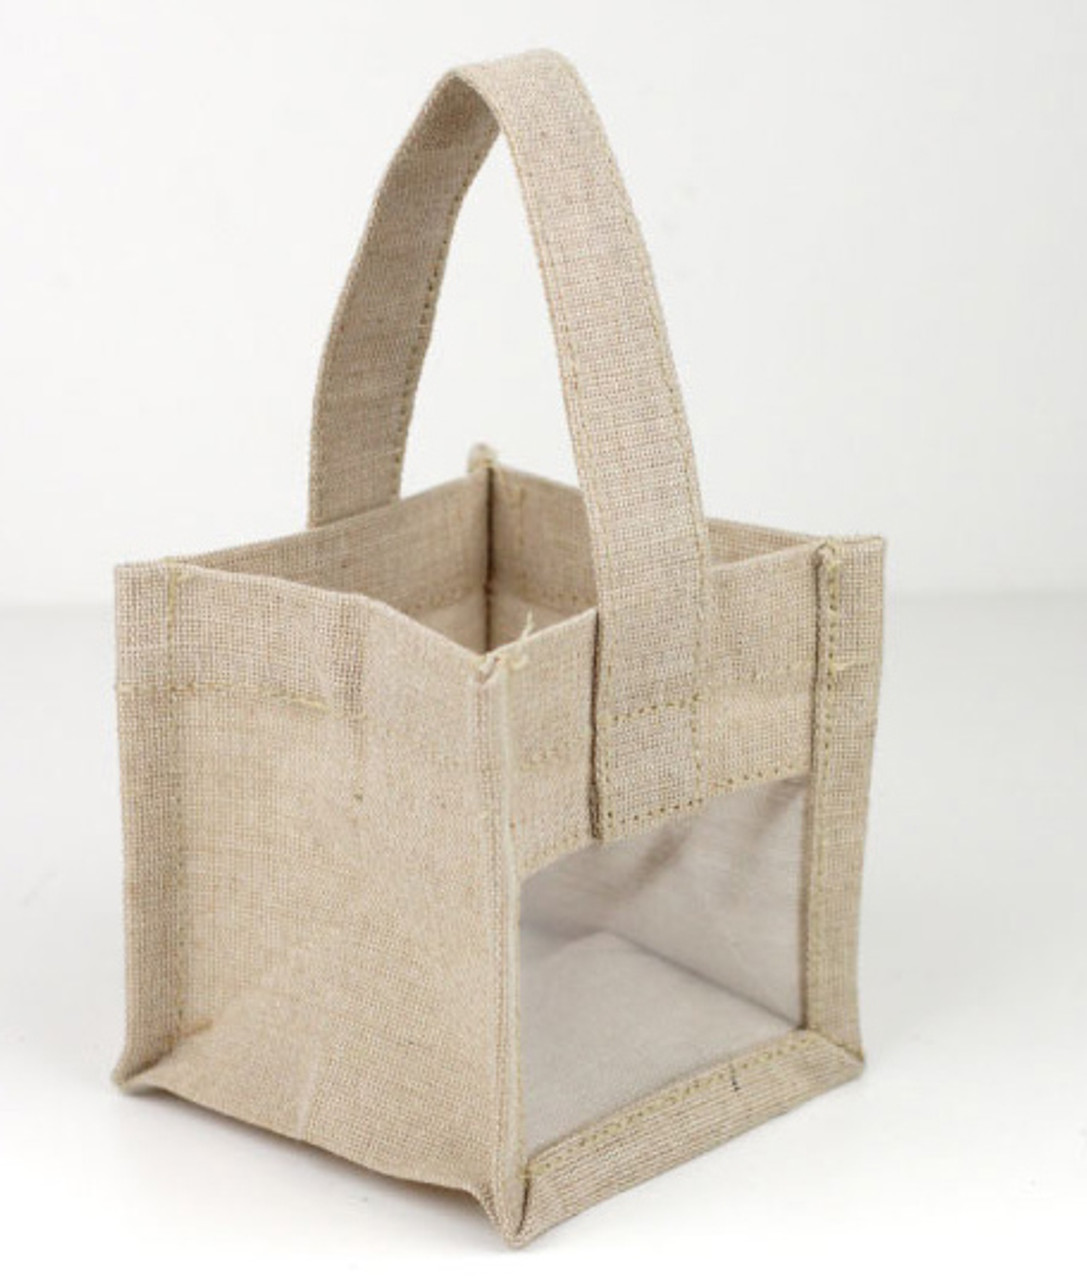 Mini Burlap Tote with Window 4.25 x 4.25